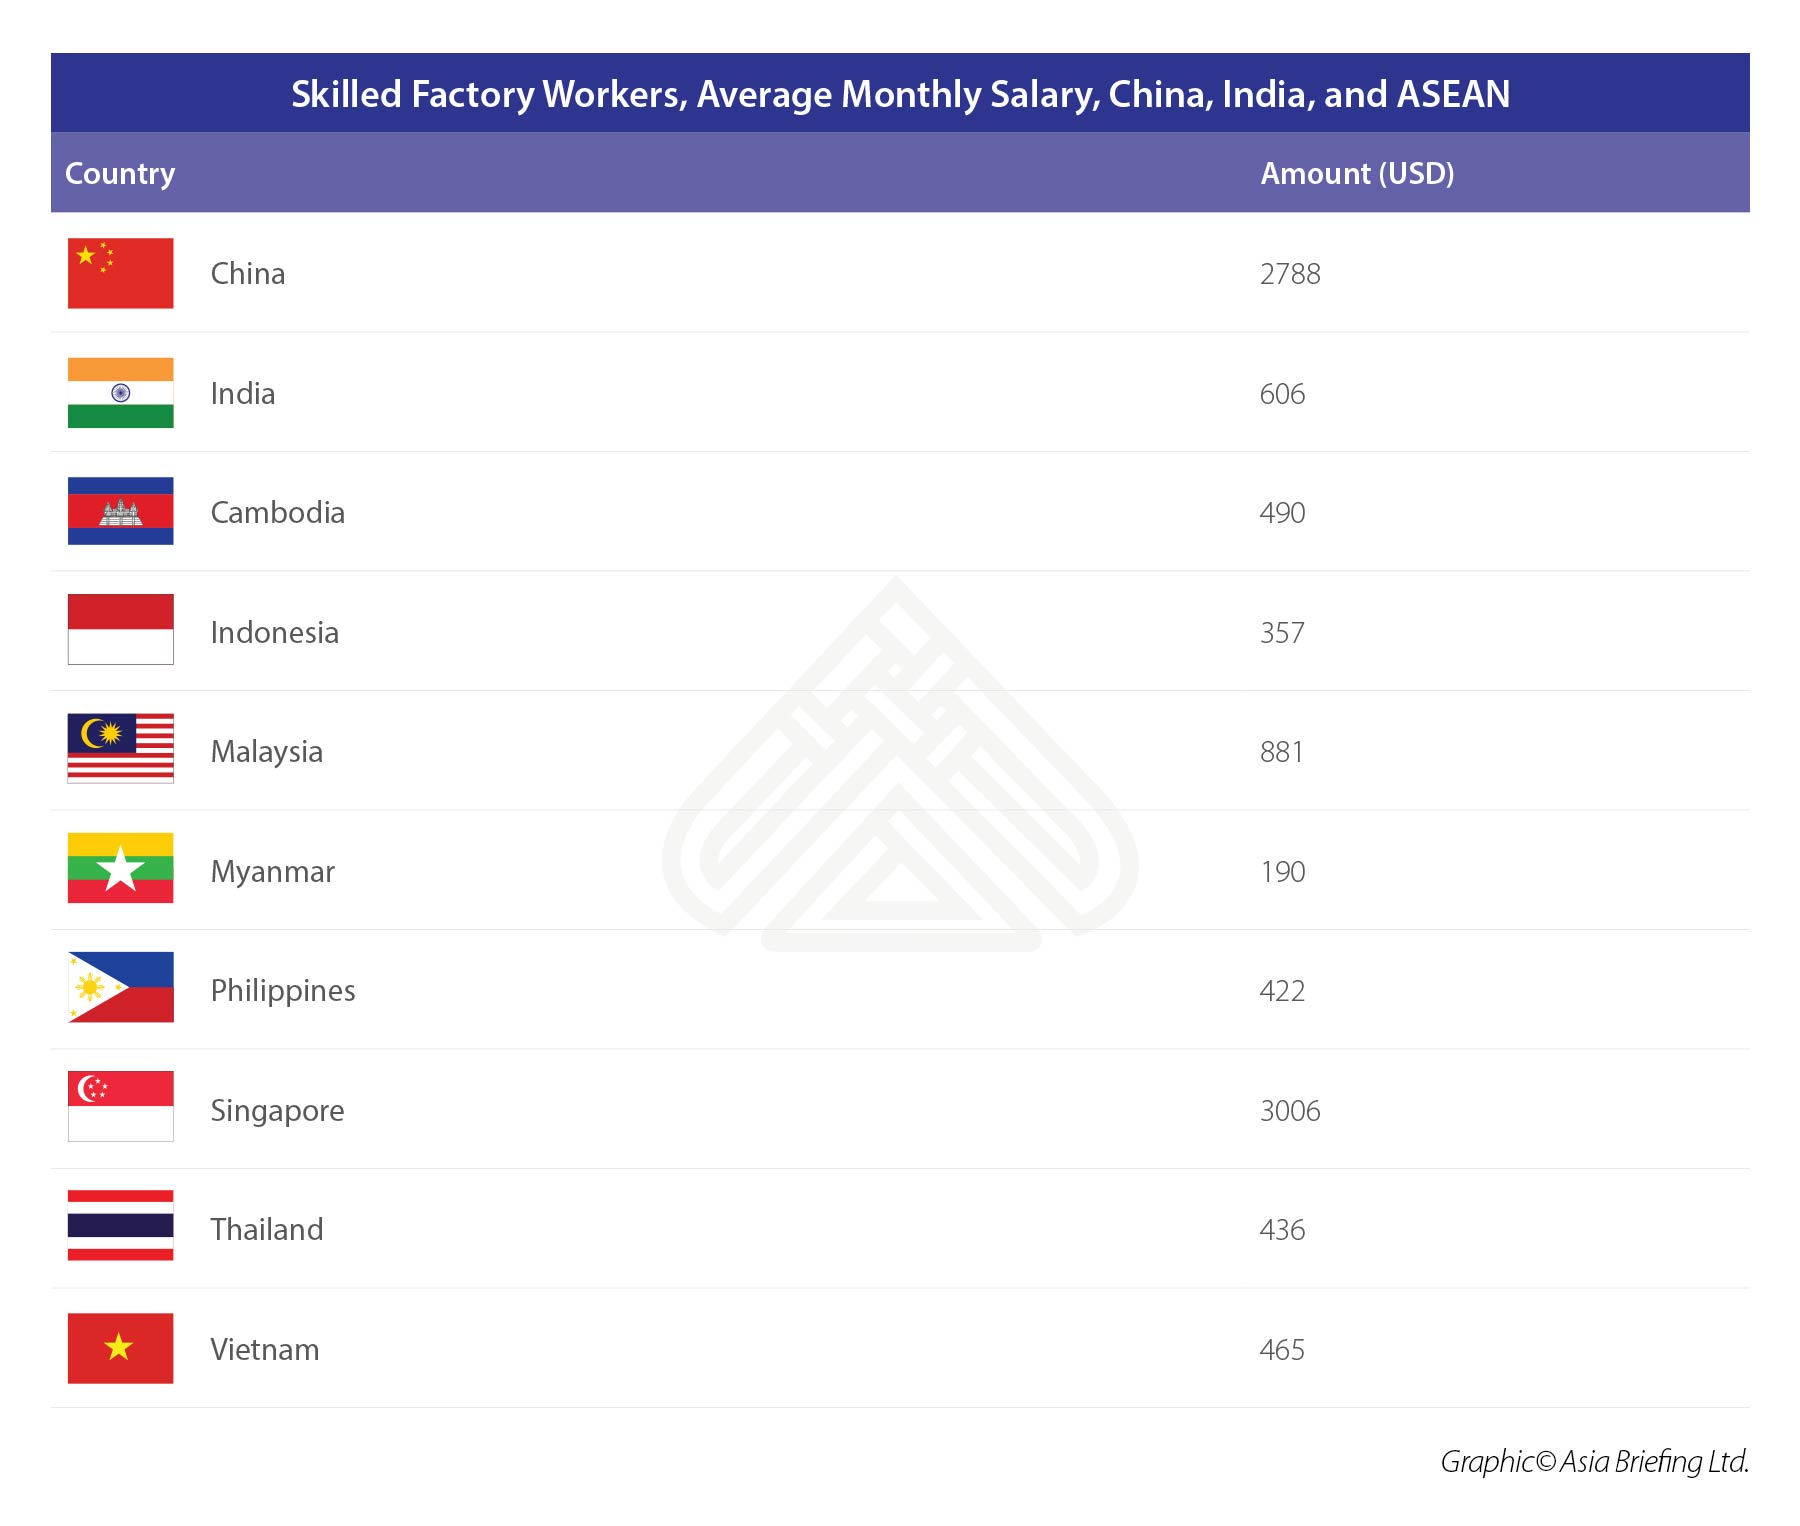 Skilled Factory Workers, Average Monthly Salary, China, India, and ASEAN